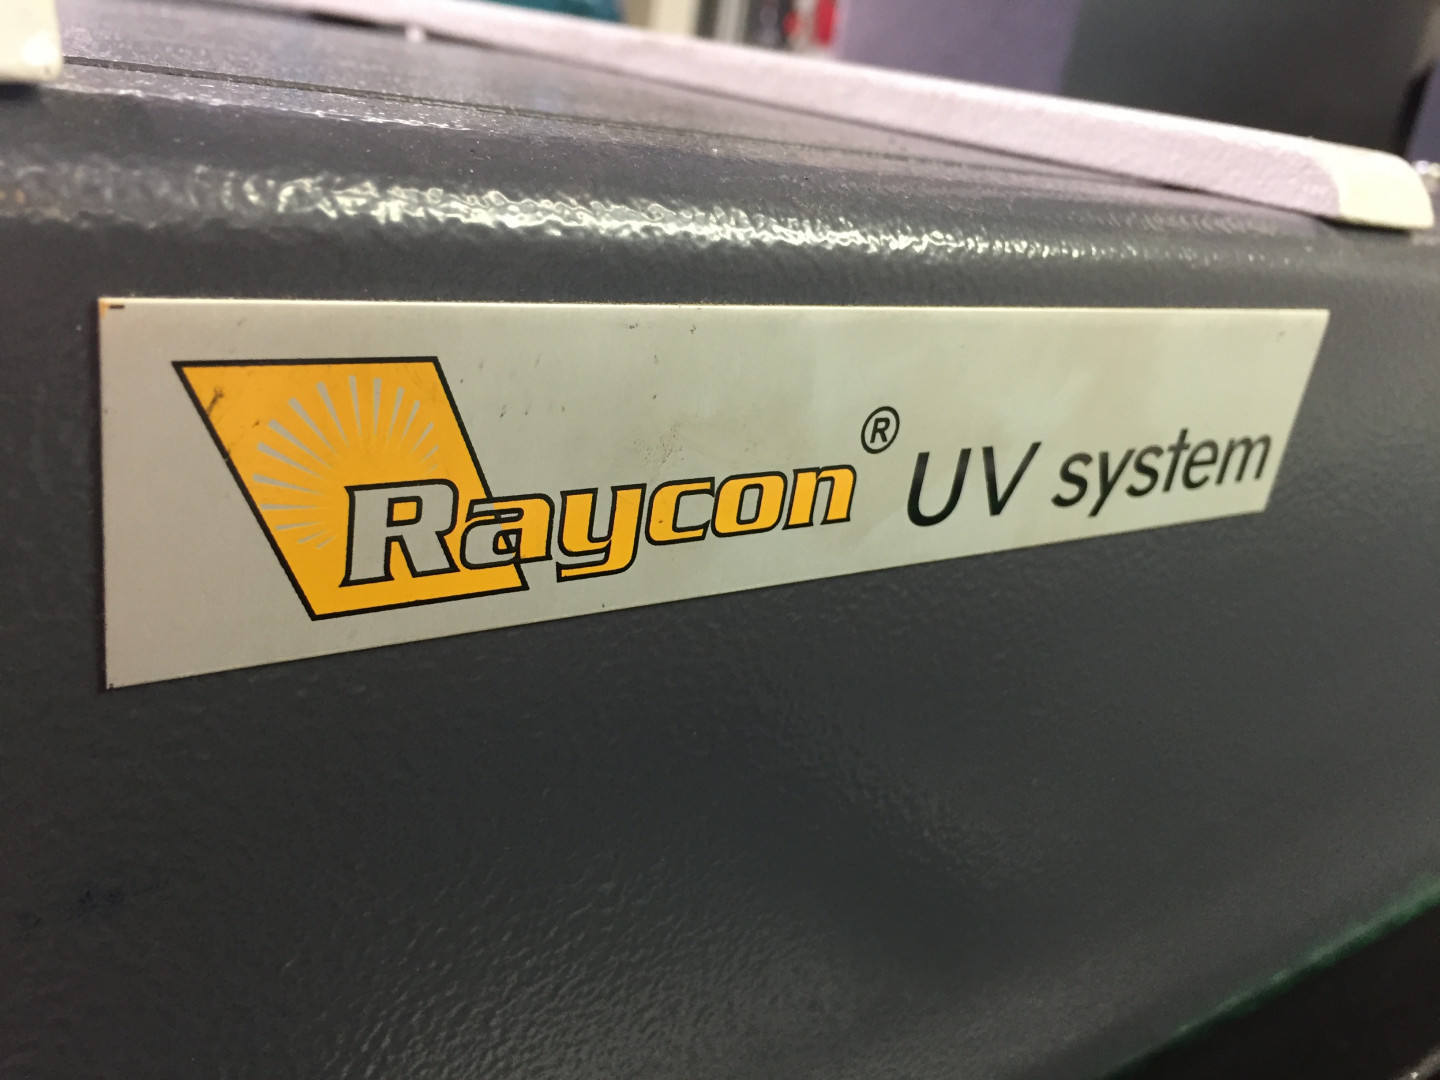 machine identification plate Raycom UV system